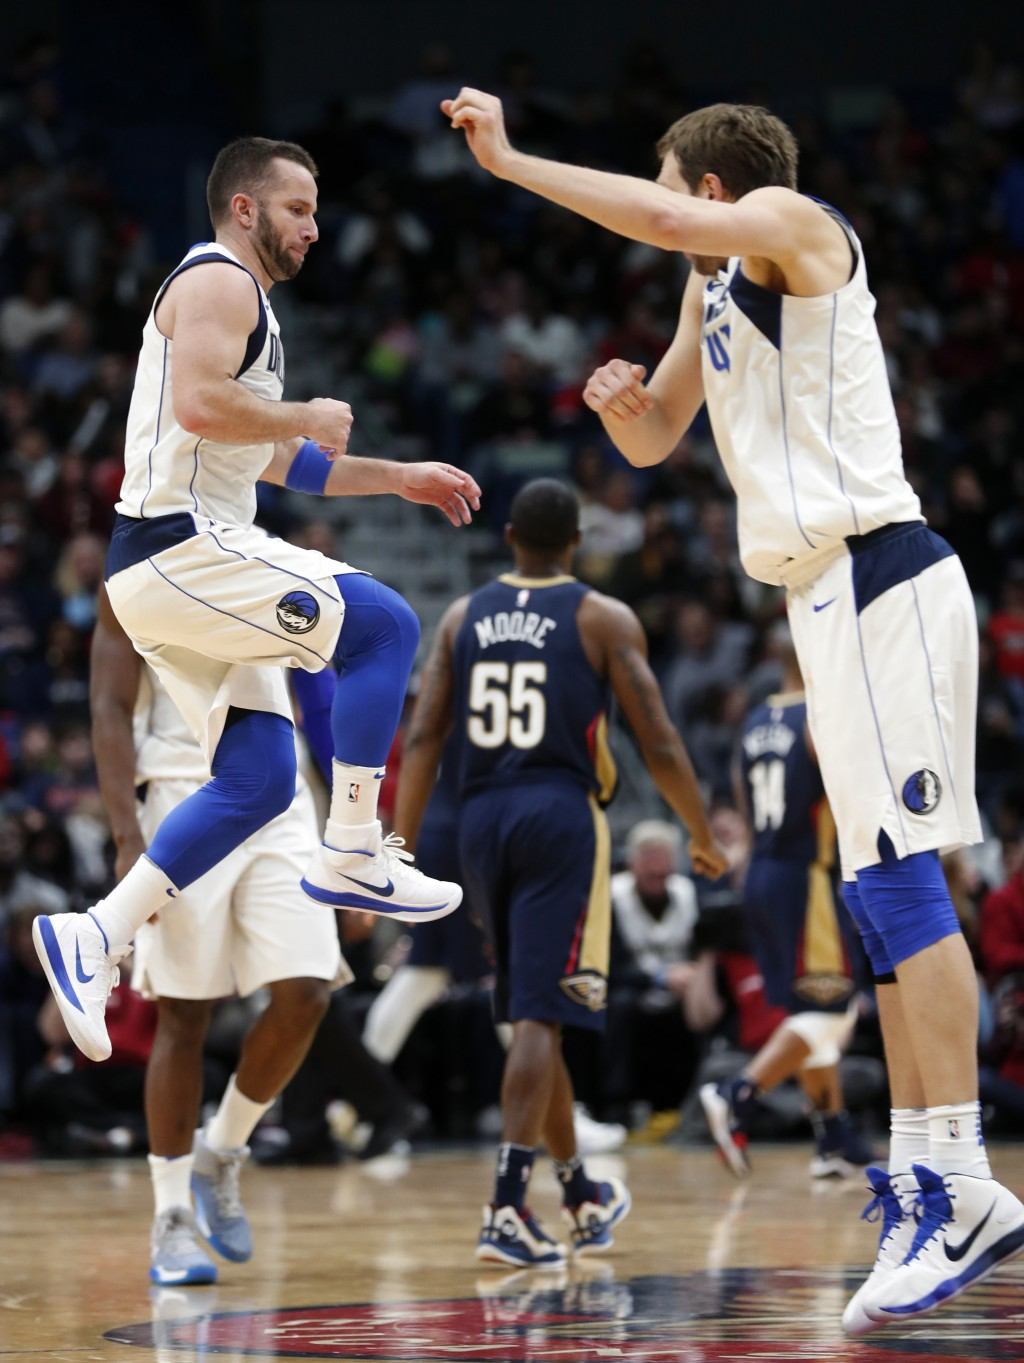 Dallas Mavericks guard J.J. Barea, left, celebrates with forward Dirk Nowitzki in the second half of an NBA basketball game in New Orleans, Friday, De...